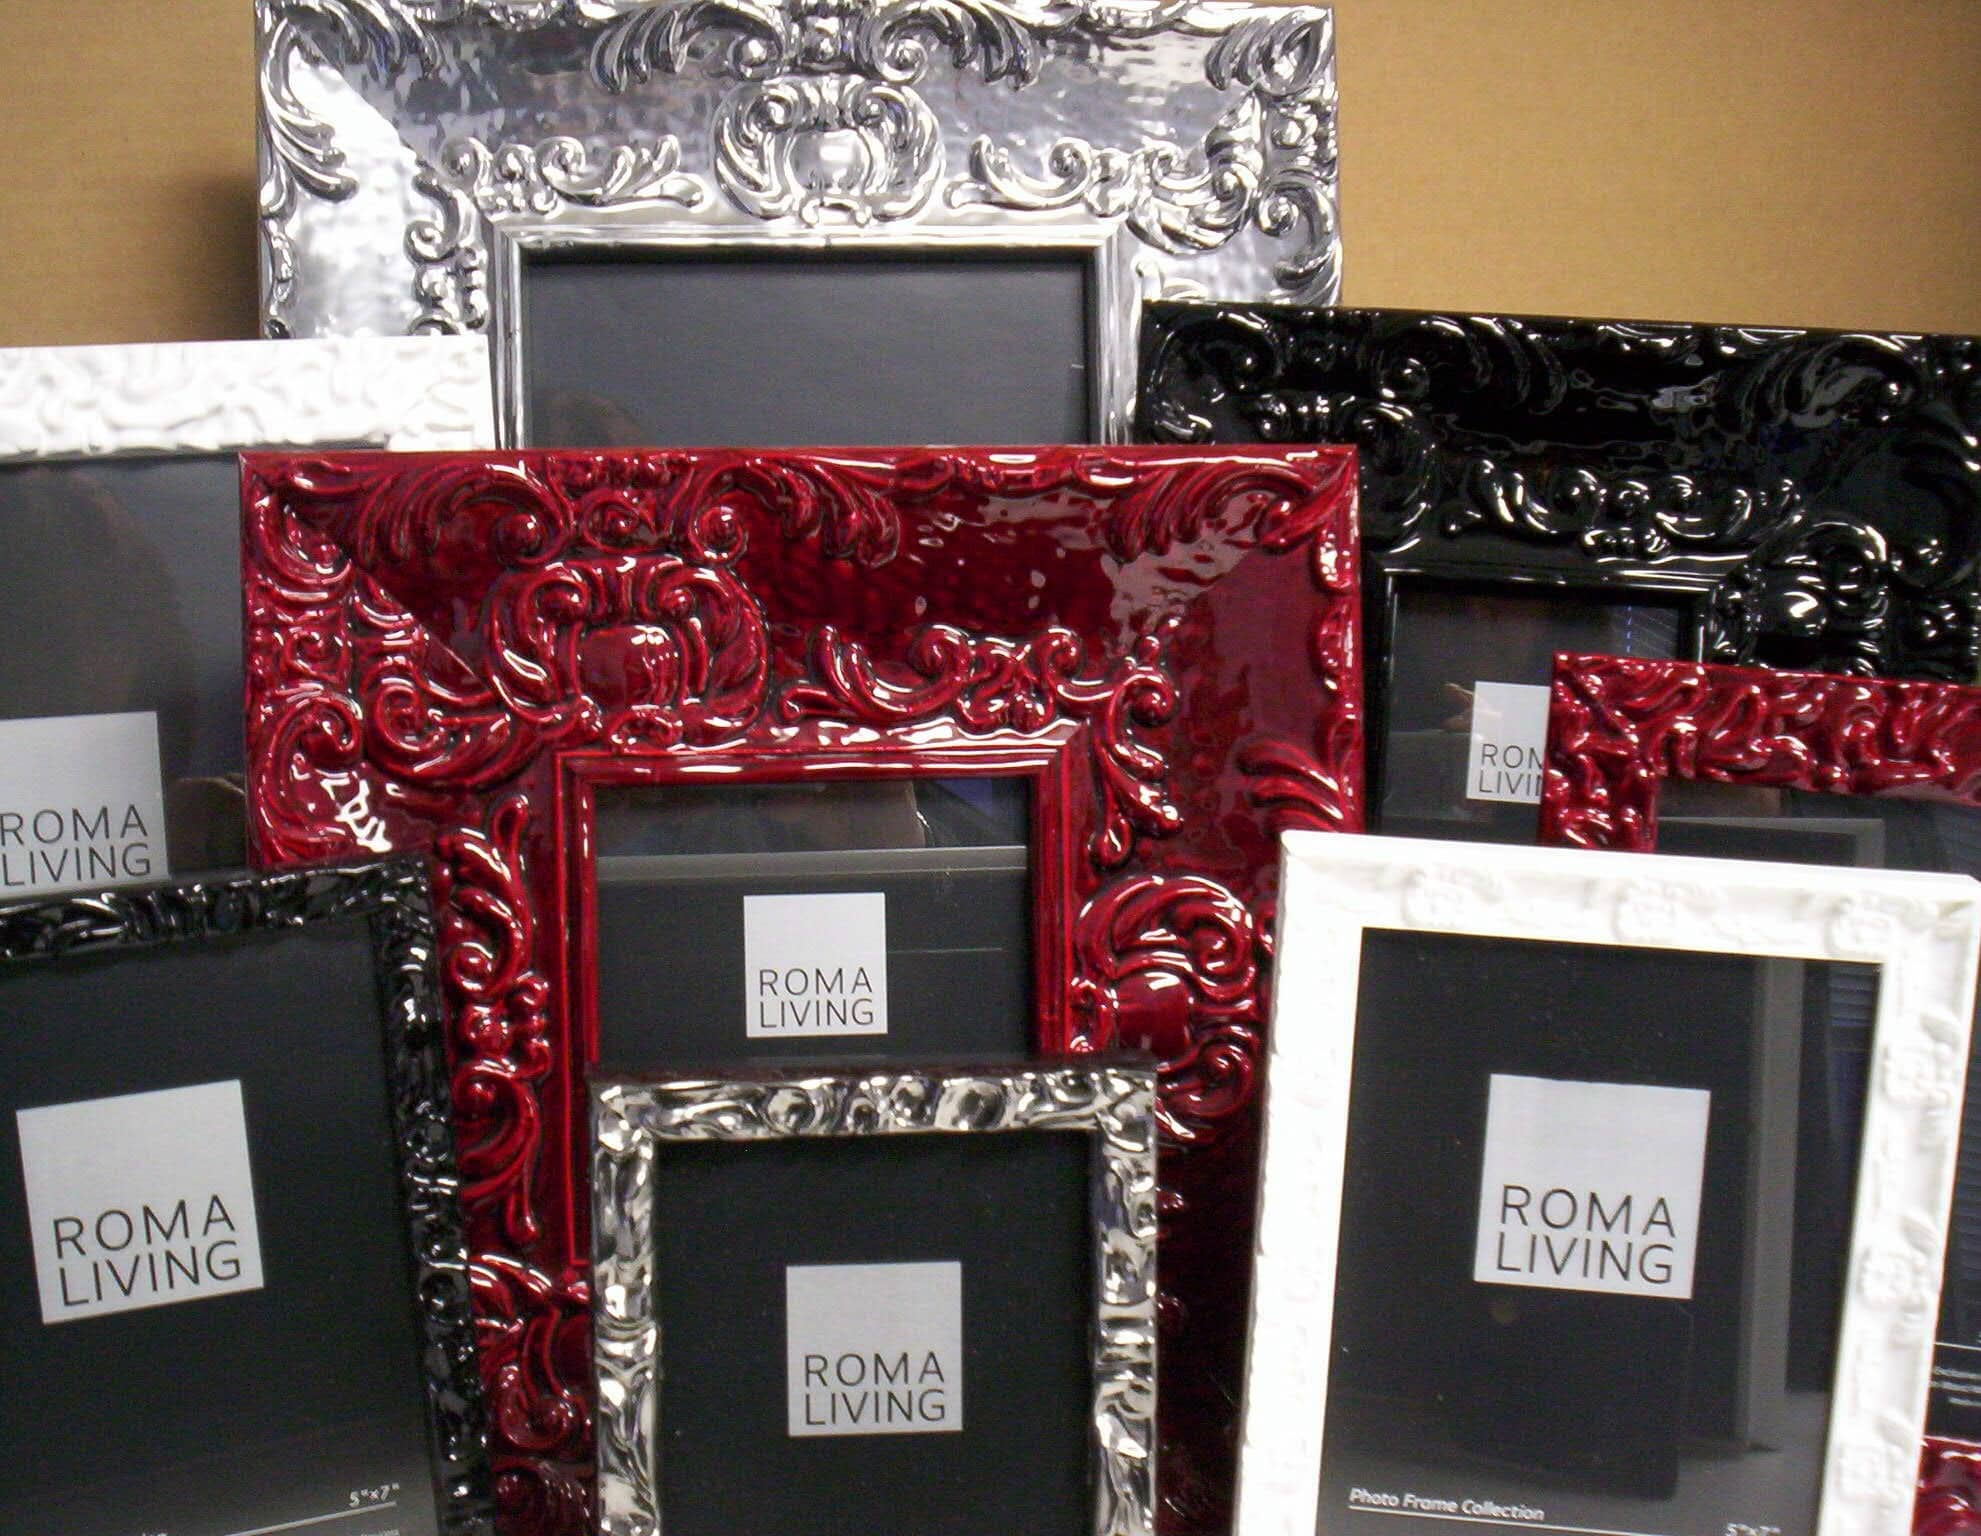 Roma Photo Frames available at Karen's Detail Custom Frames, Orange County CA